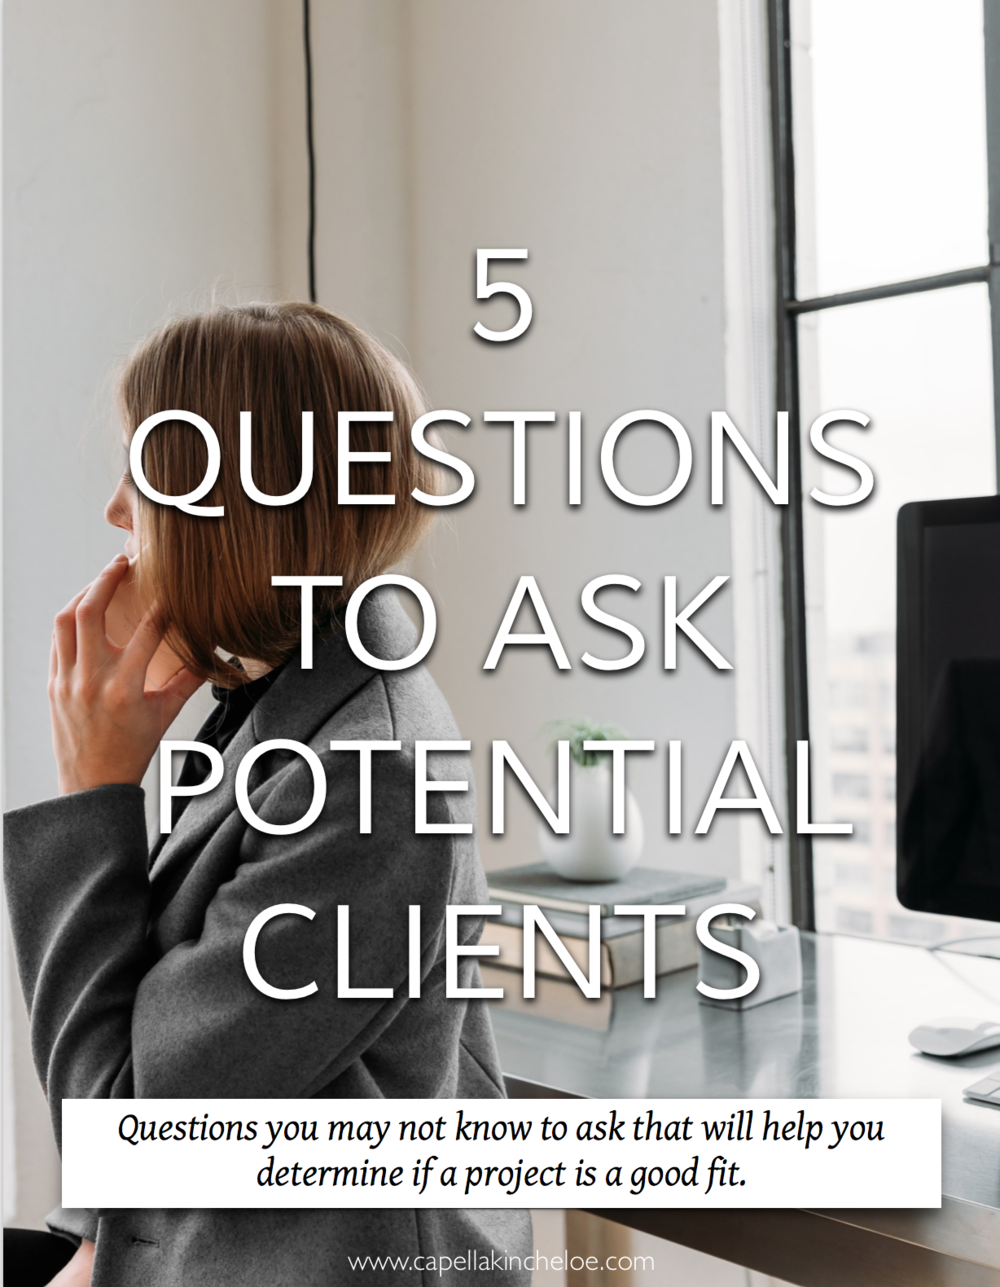 5 Questions to Ask Potential Clients